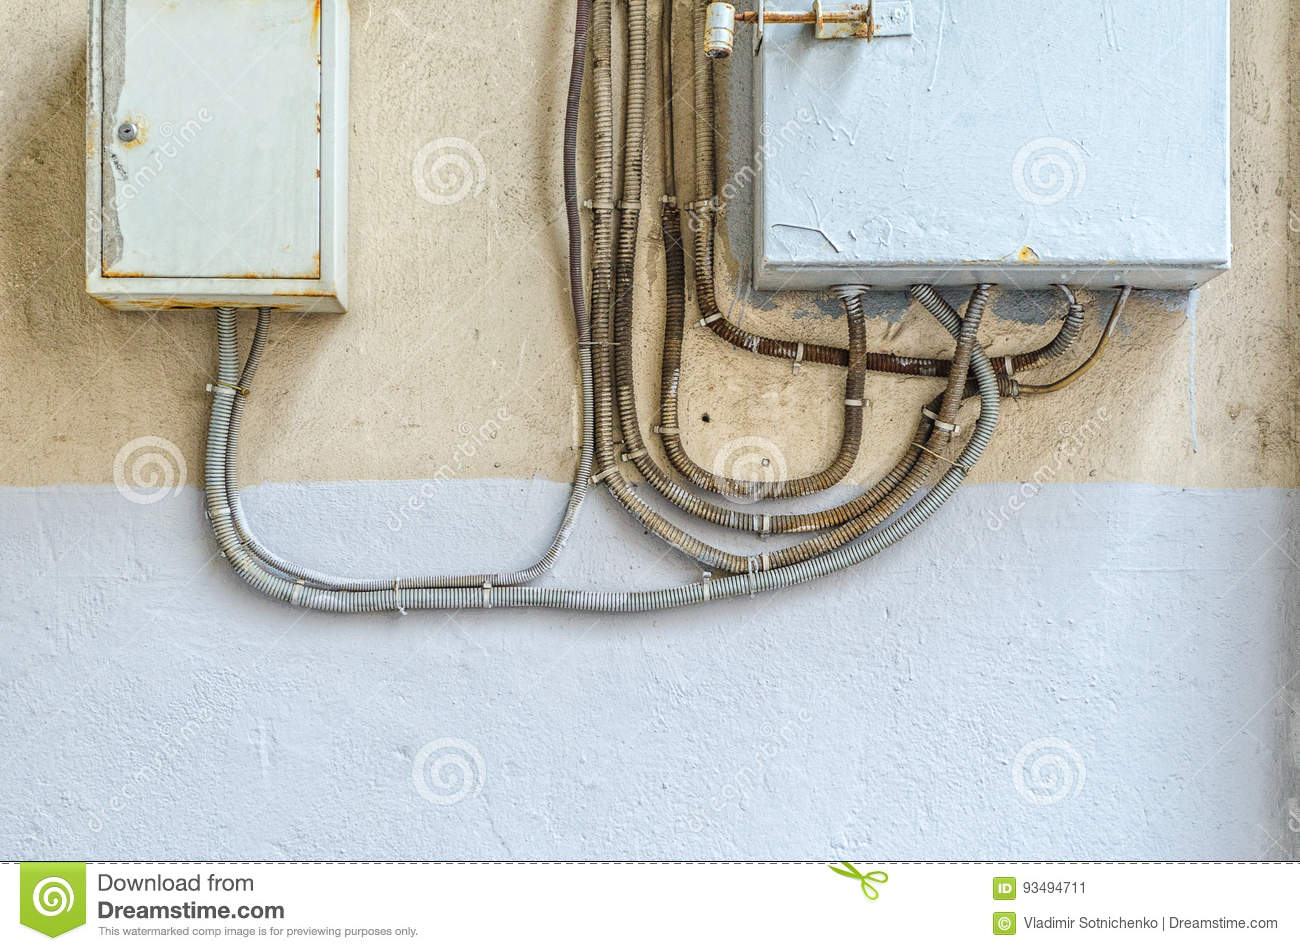 Sensational Electric Distribution Boxes On Wall Stock Image Image Of Detailed Wiring Digital Resources Remcakbiperorg